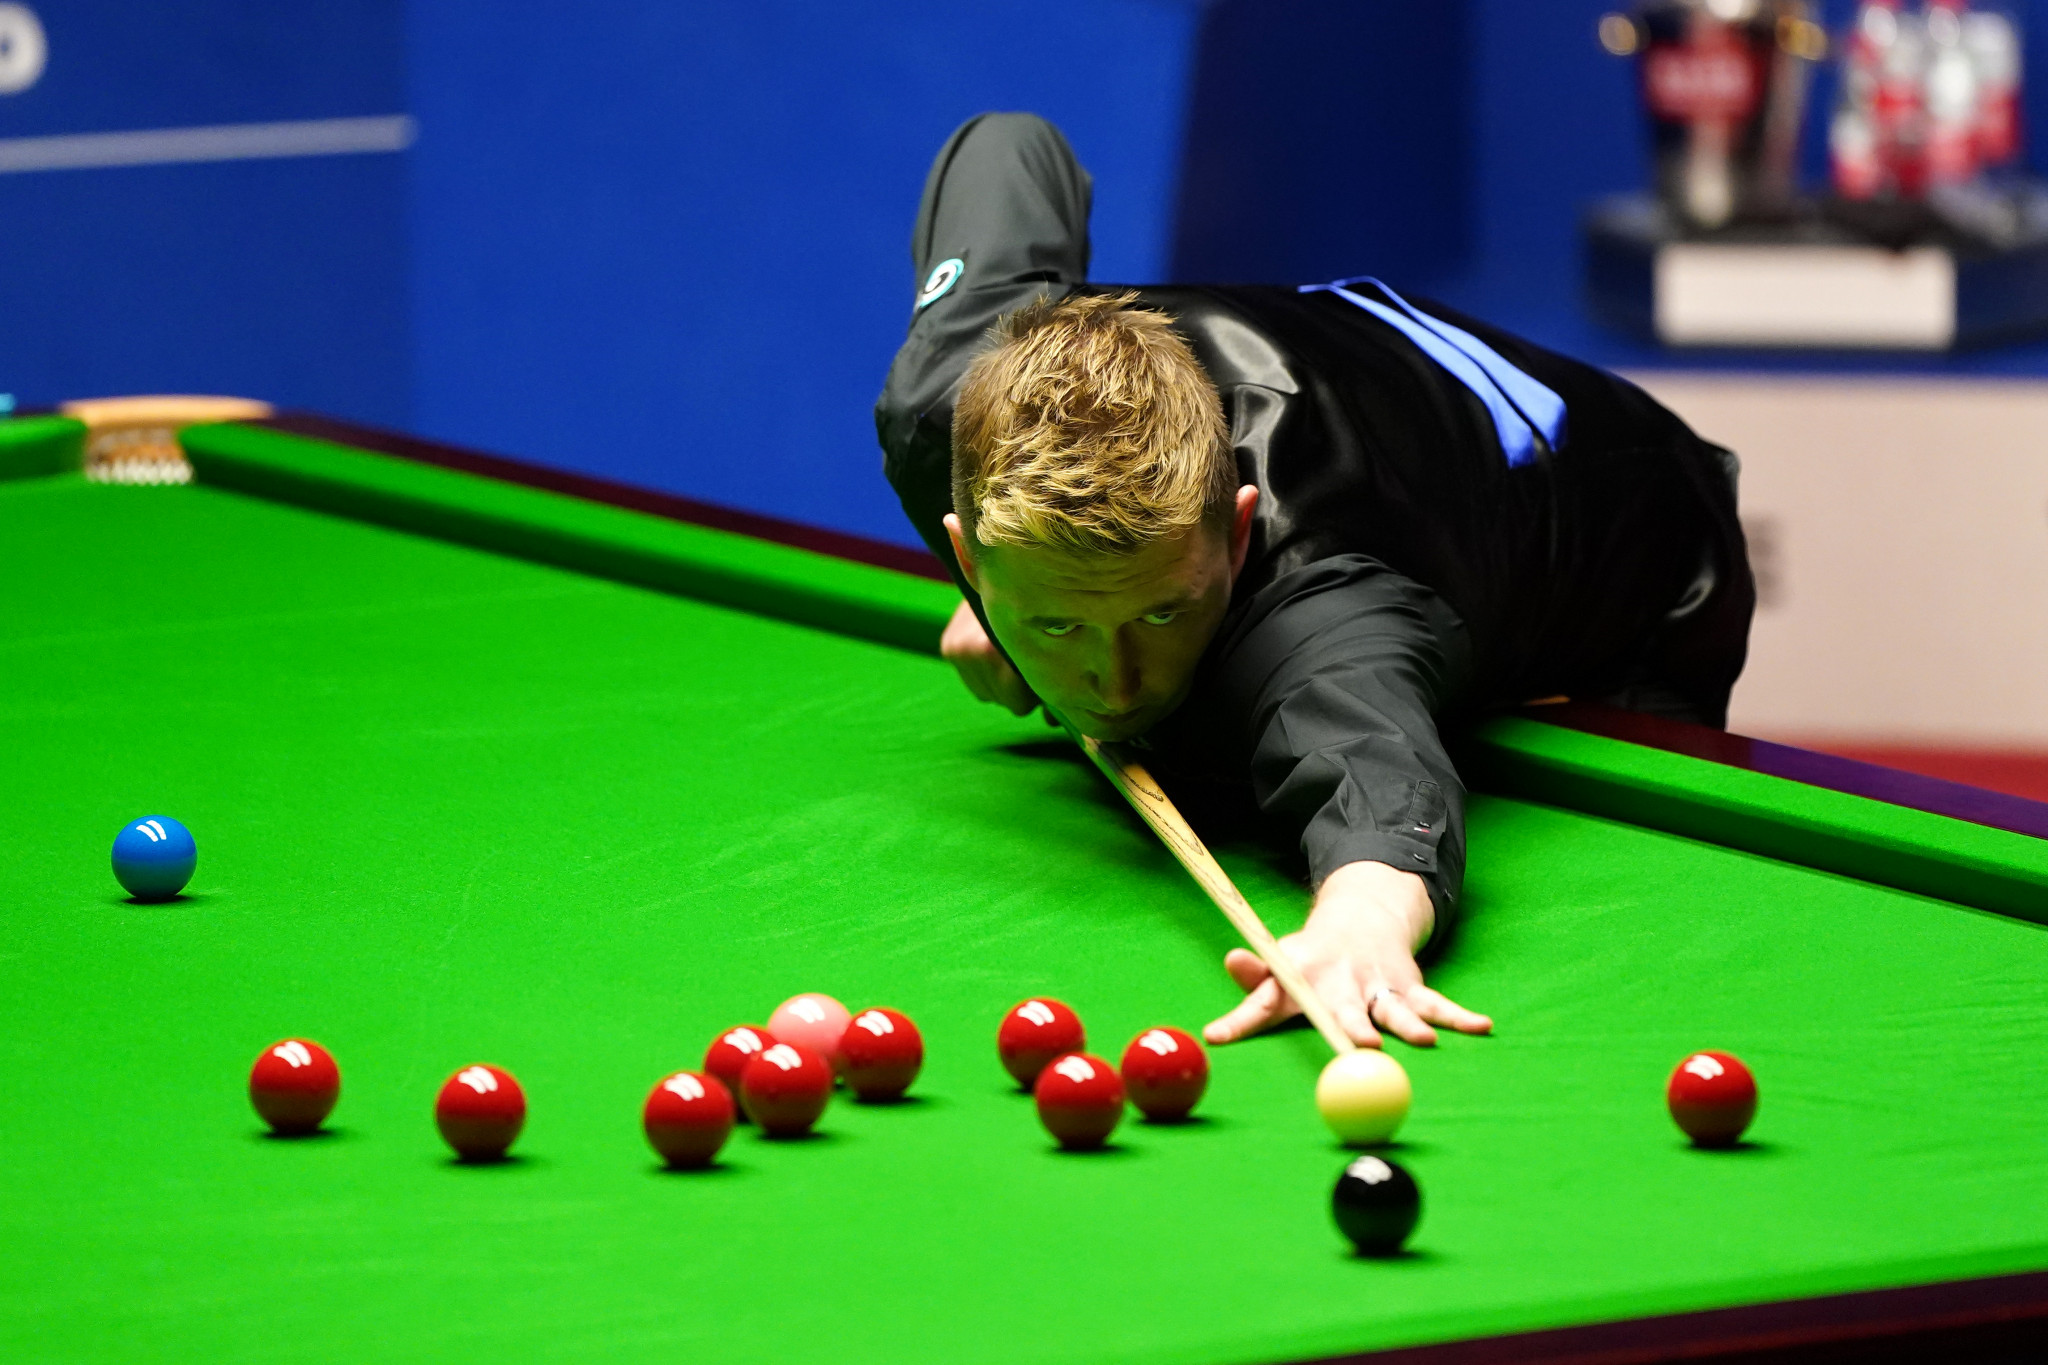 Wilson opens up four frame lead over Murphy in World Snooker Championship semi-final